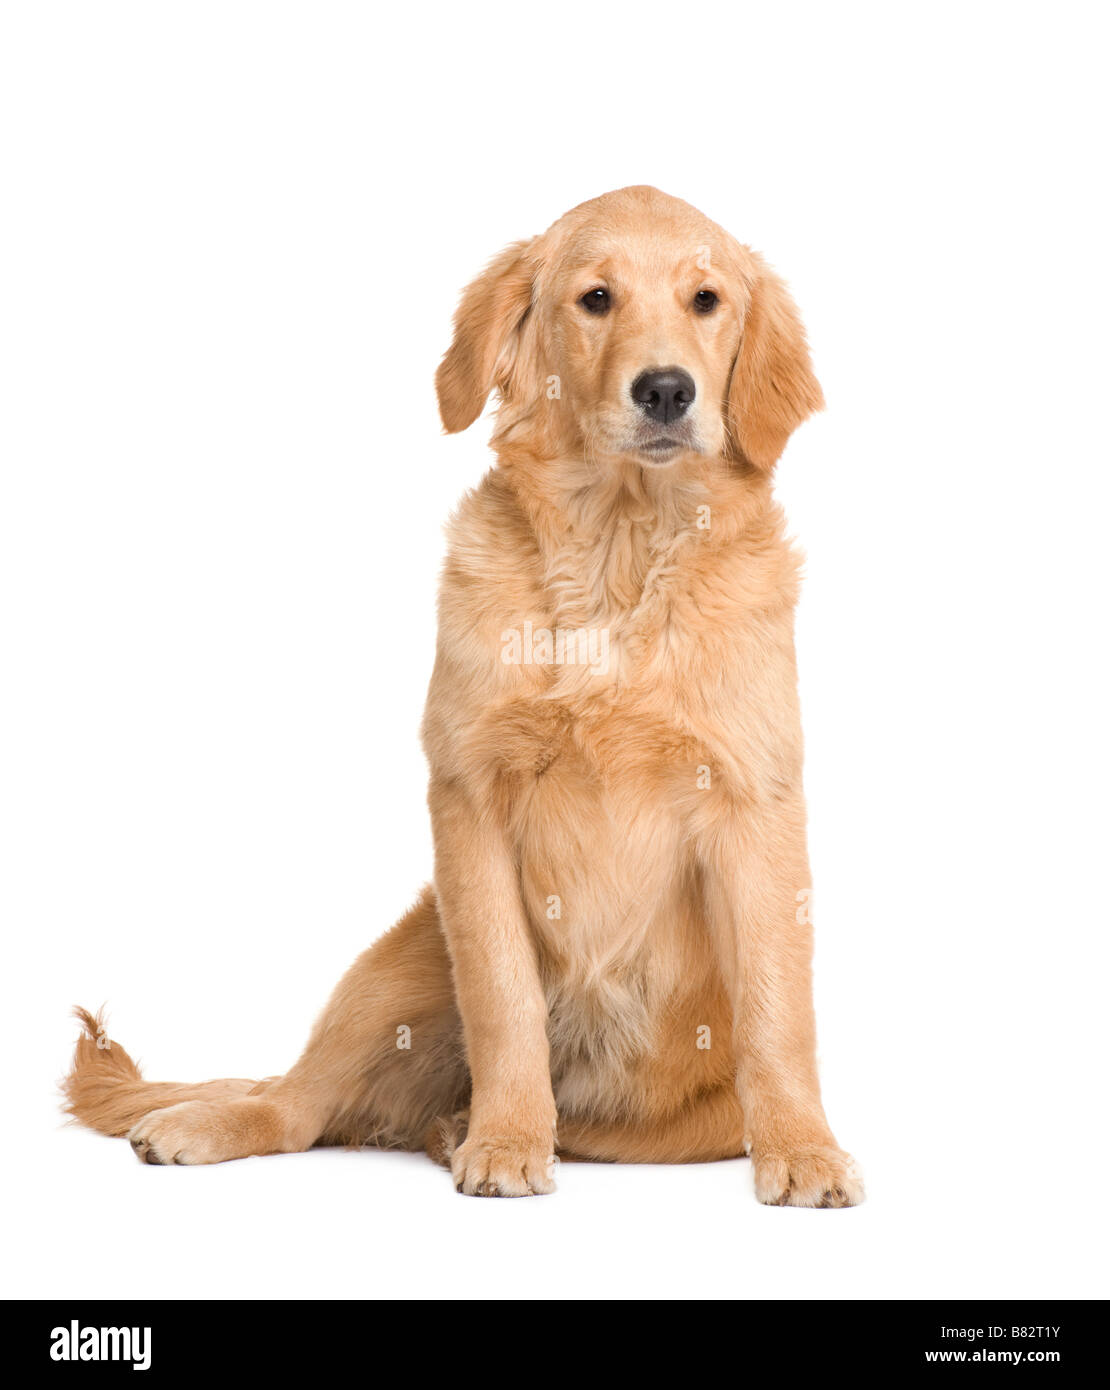 Golden Retriever puppy 5 months in front of a white background - Stock Image